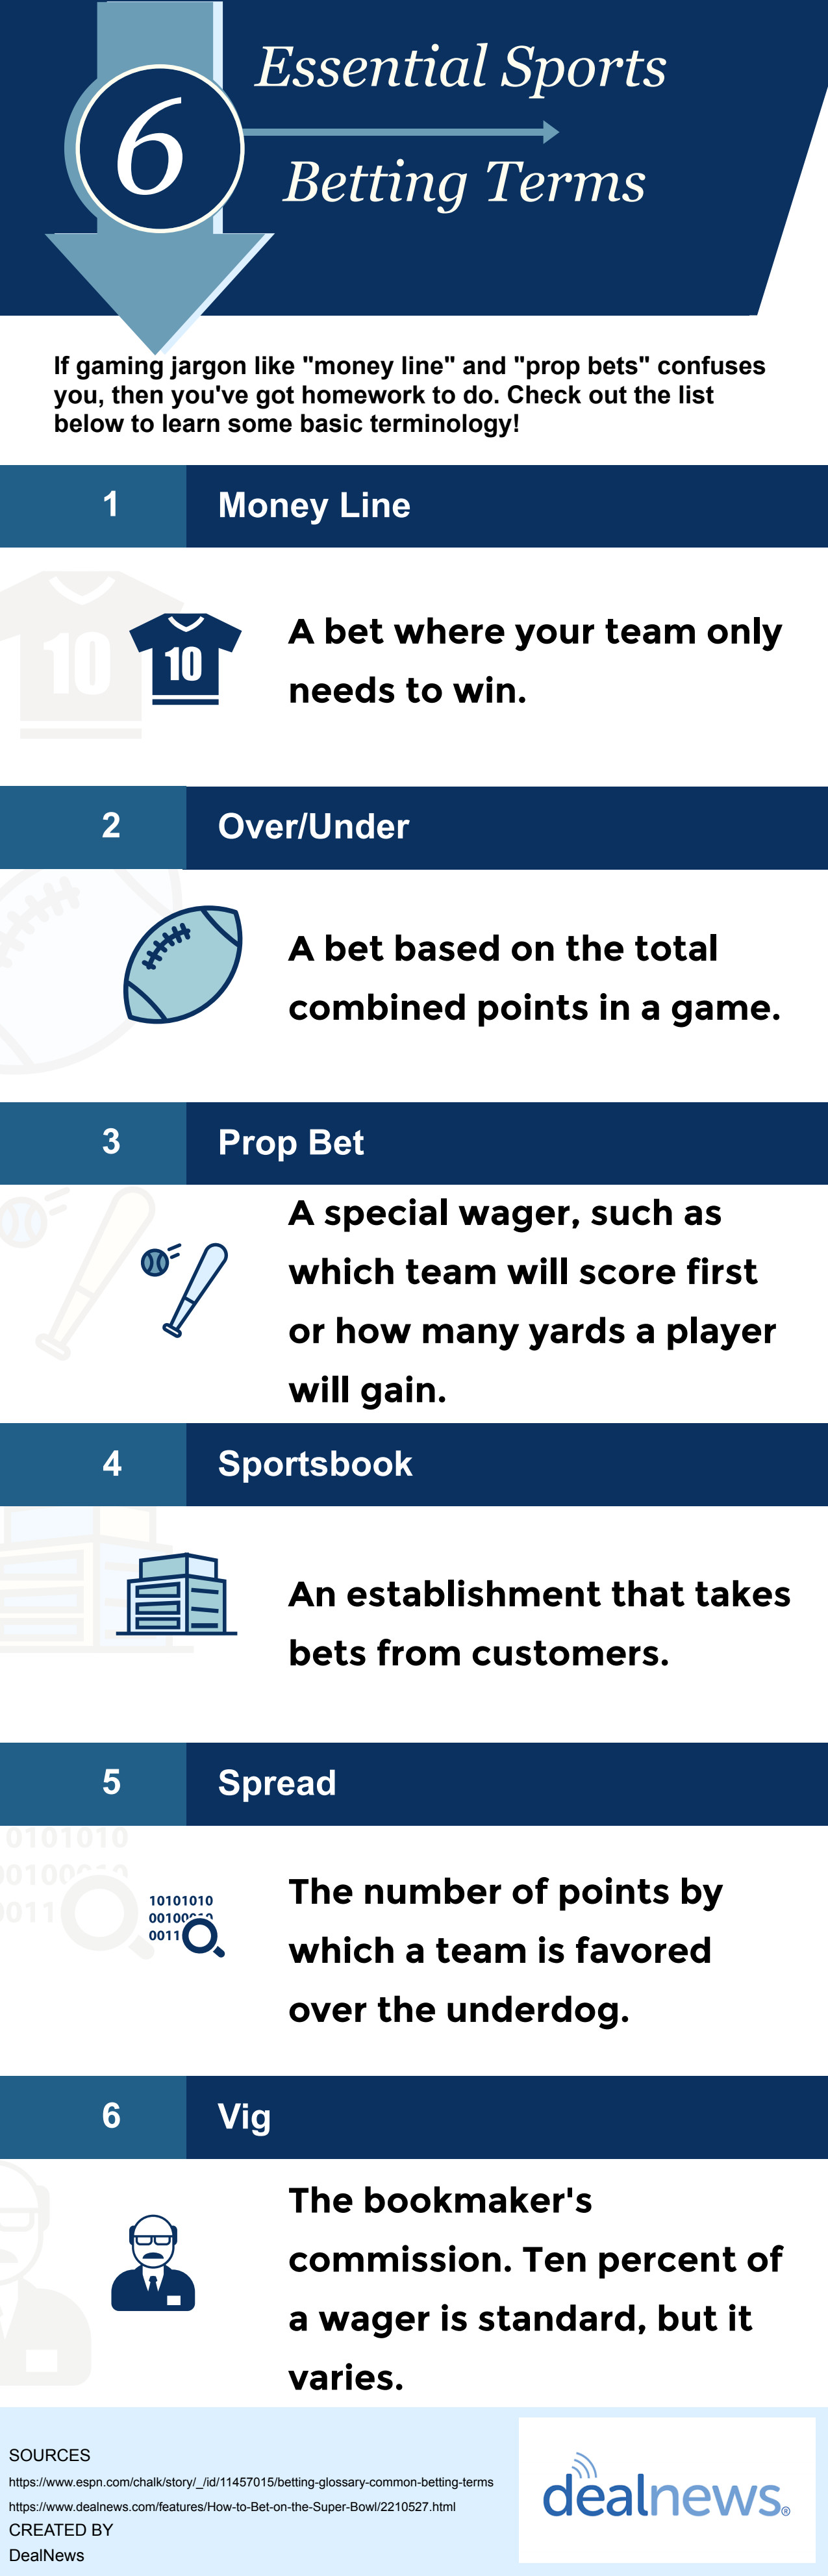 Sports Betting infographic